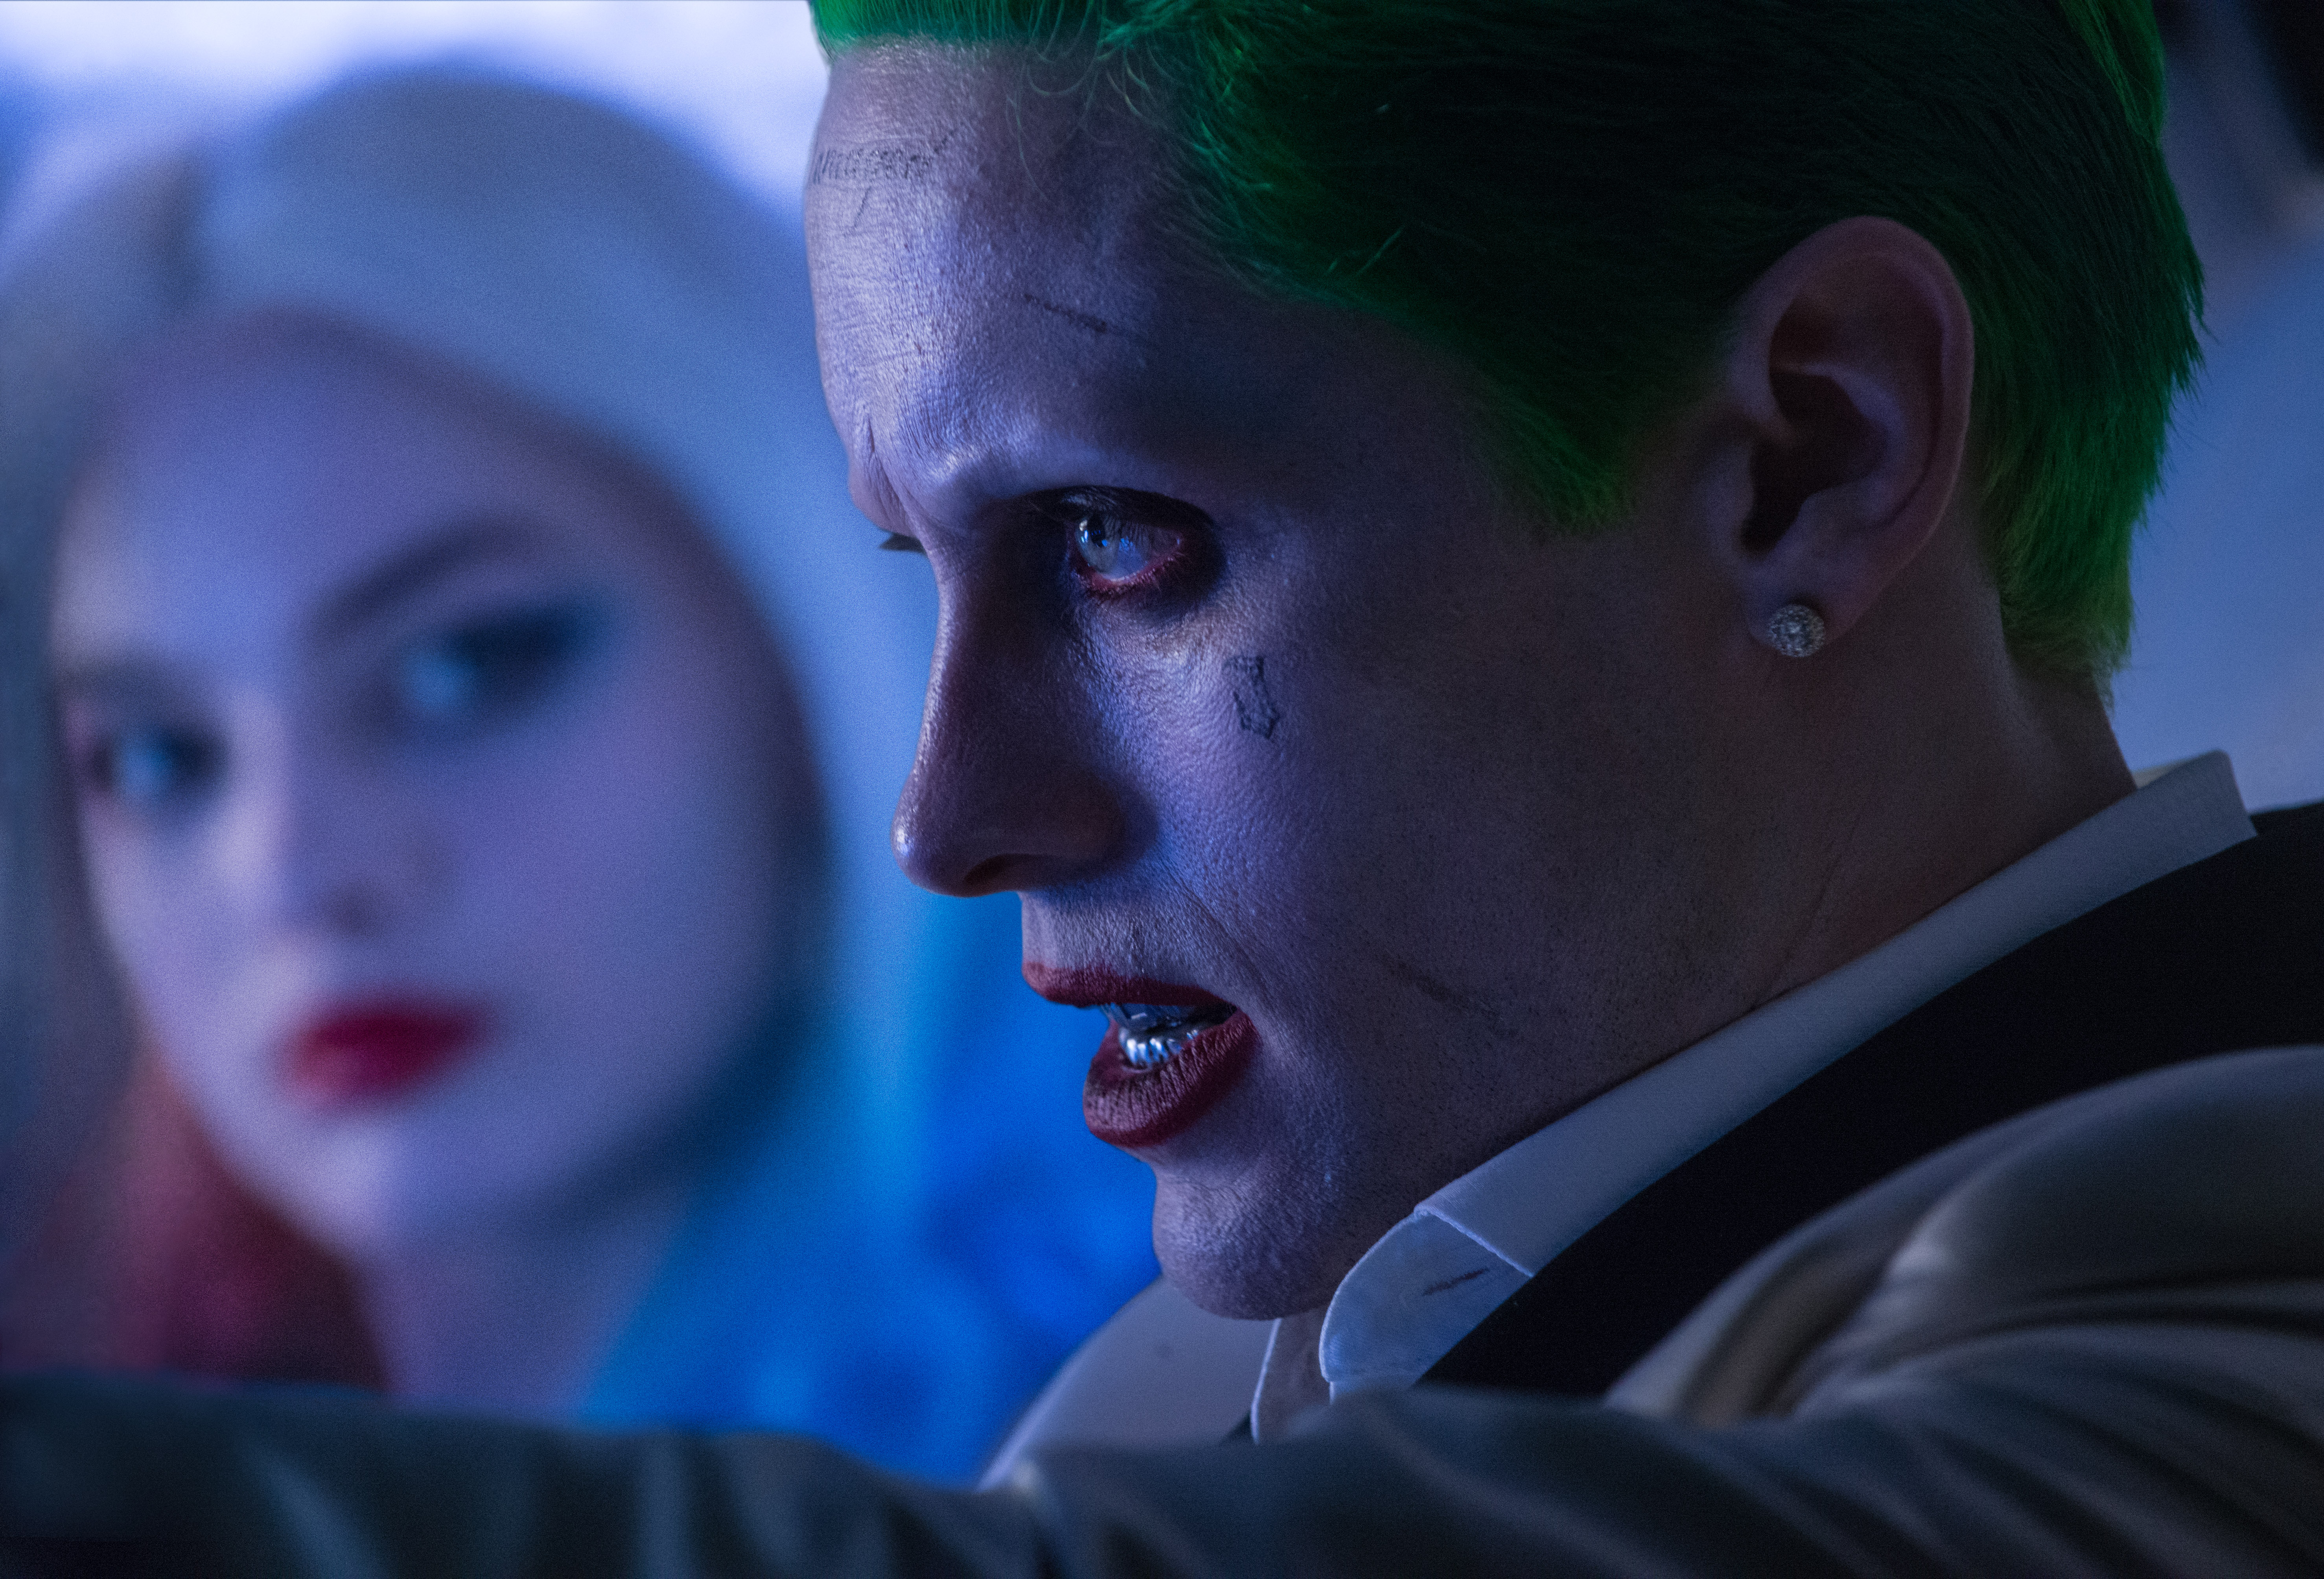 Jared Leto as the Joker and Margot Robbie as Harley Quinn in Suicide Squad